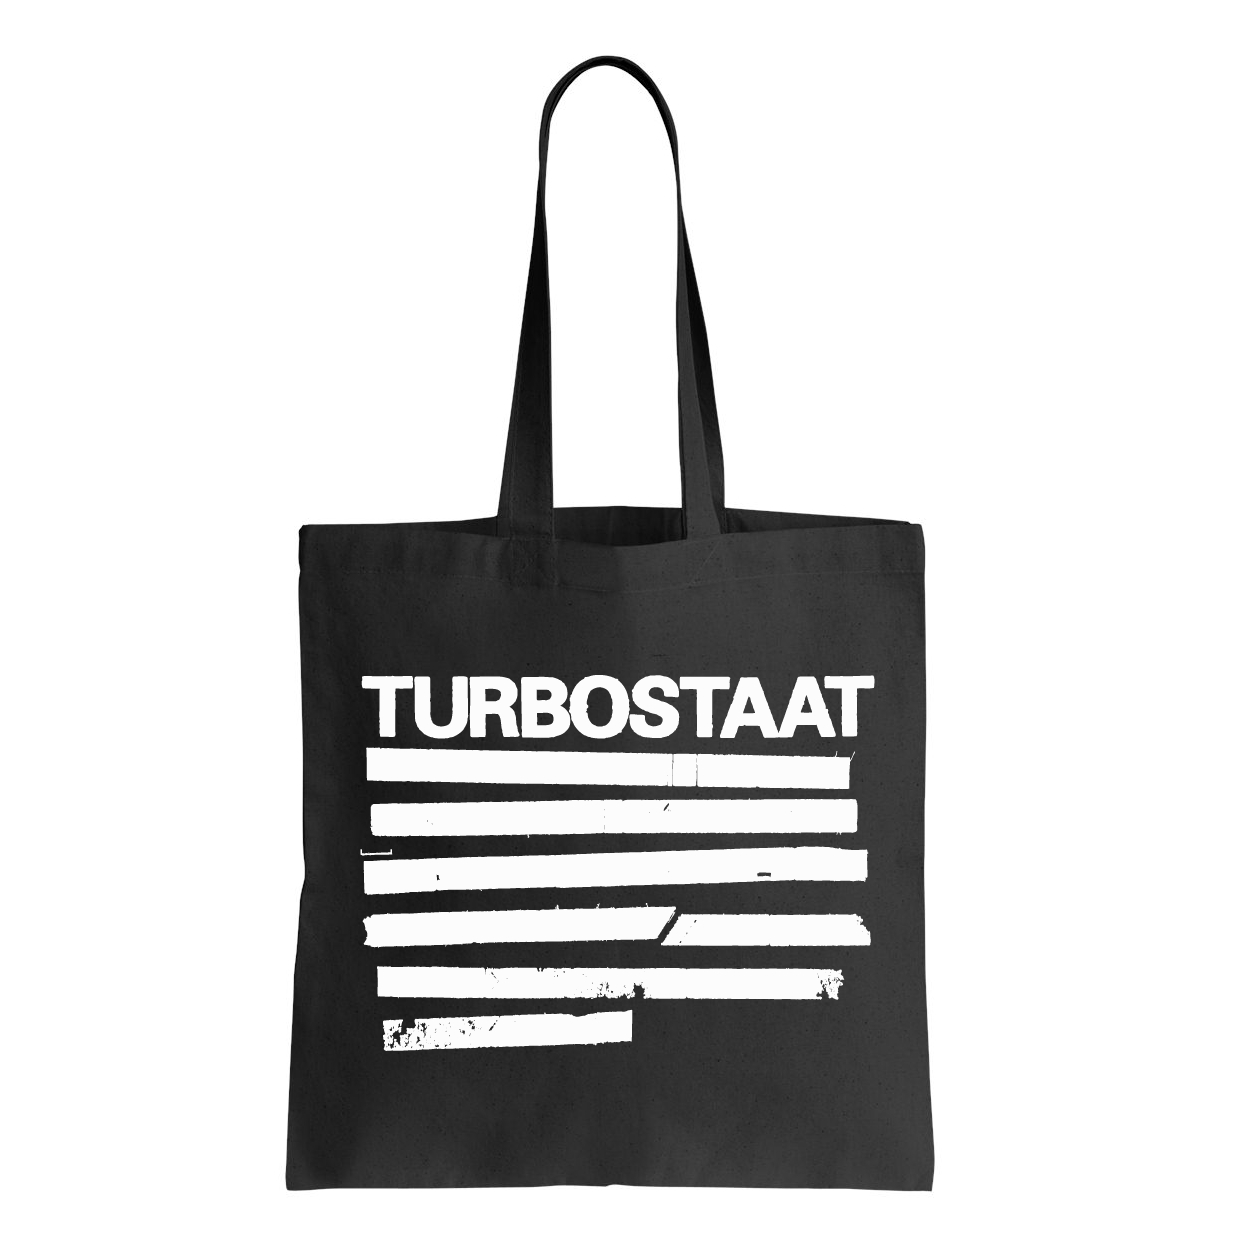 Turbostaat Balken Beutel Bag, black